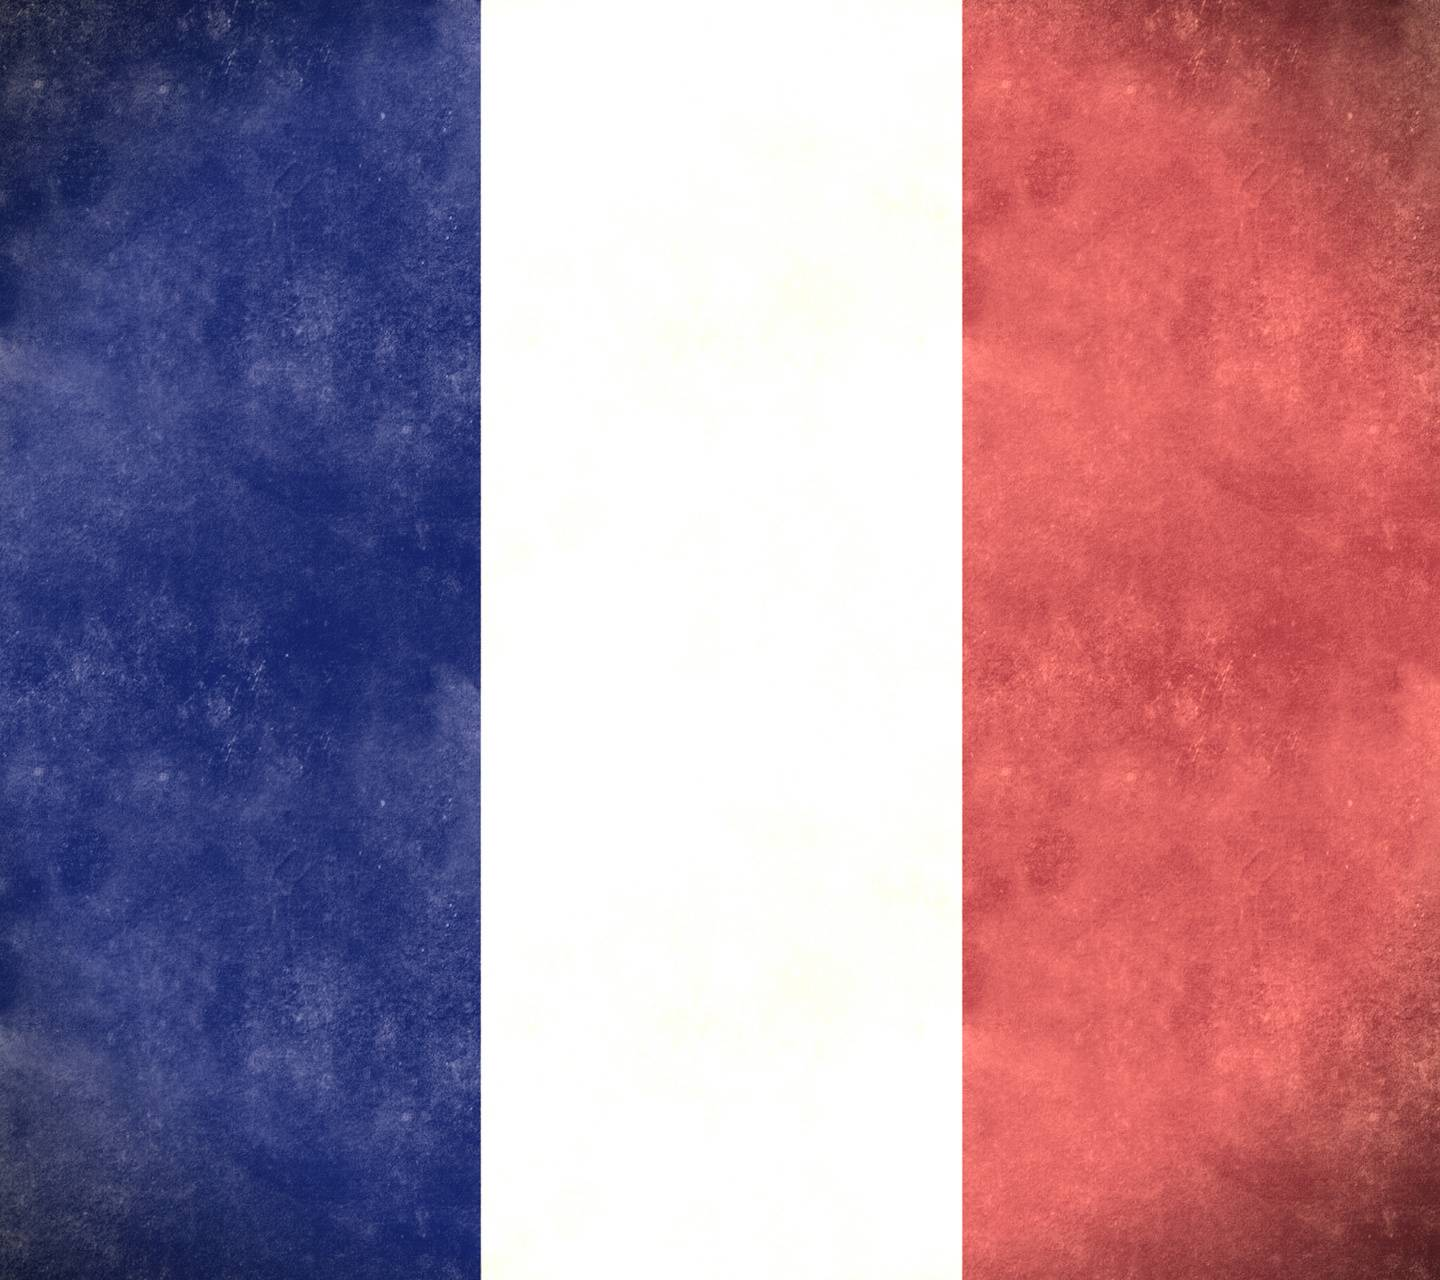 France Flag Wallpaper By Szabee78 69 Free On Zedge